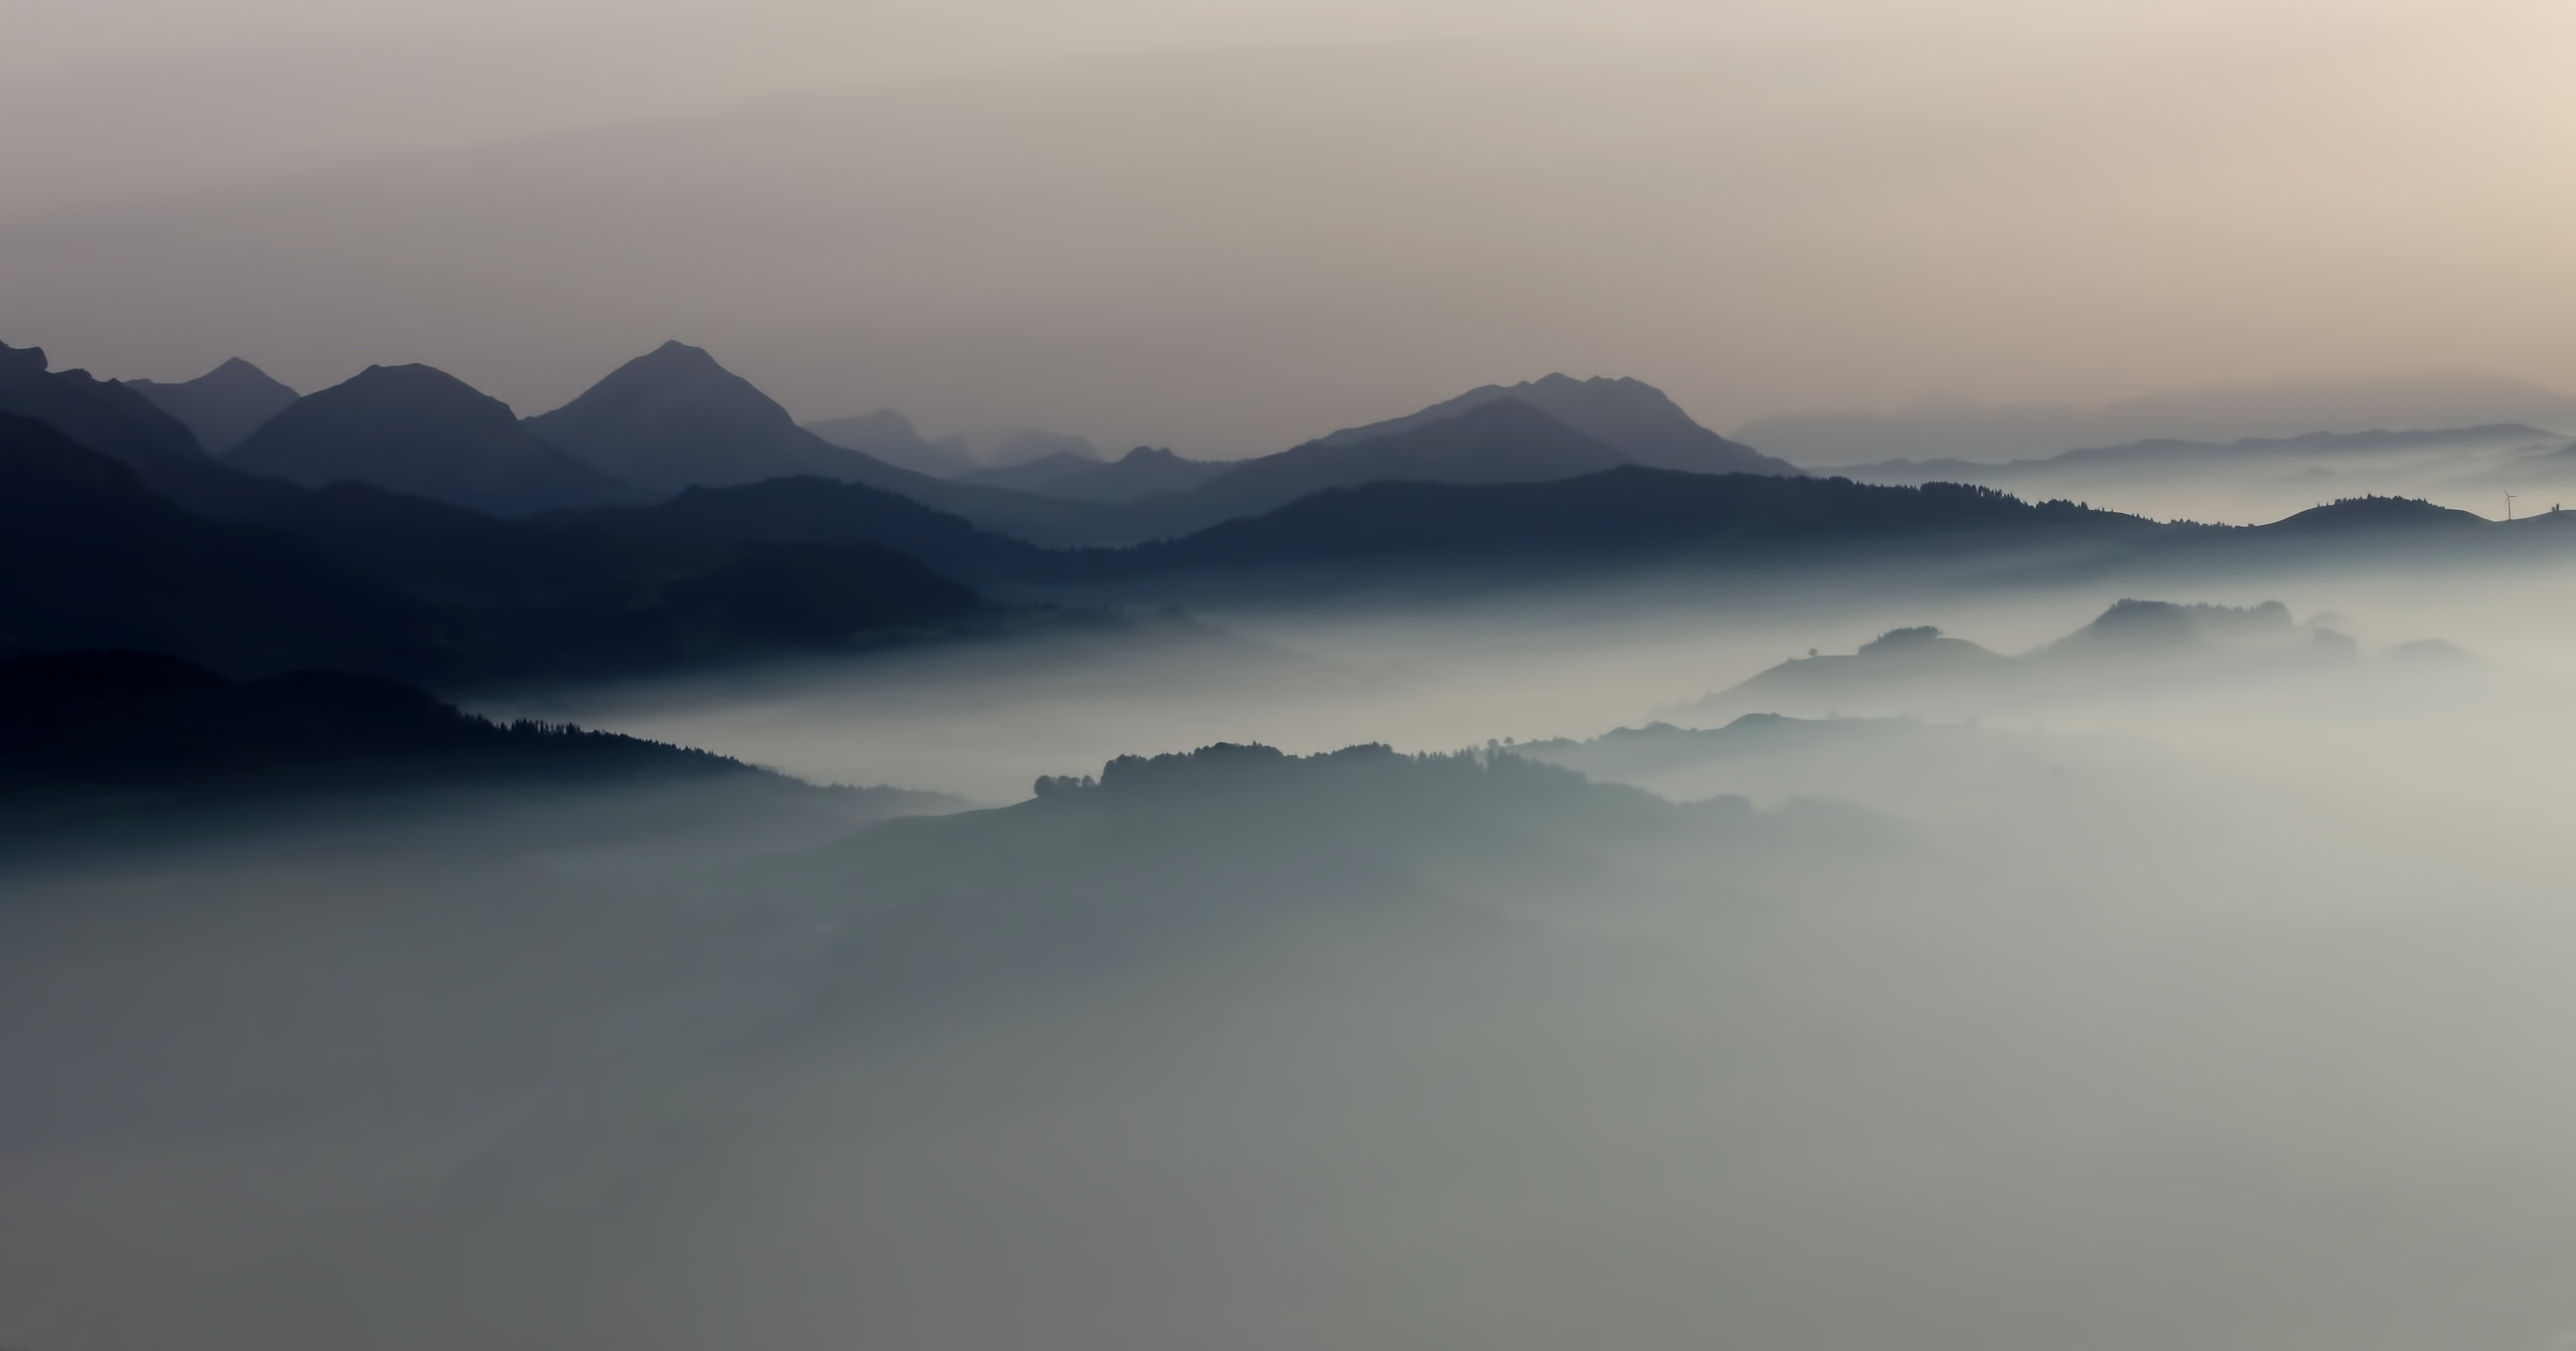 bird's eye view photography of mountains with fog